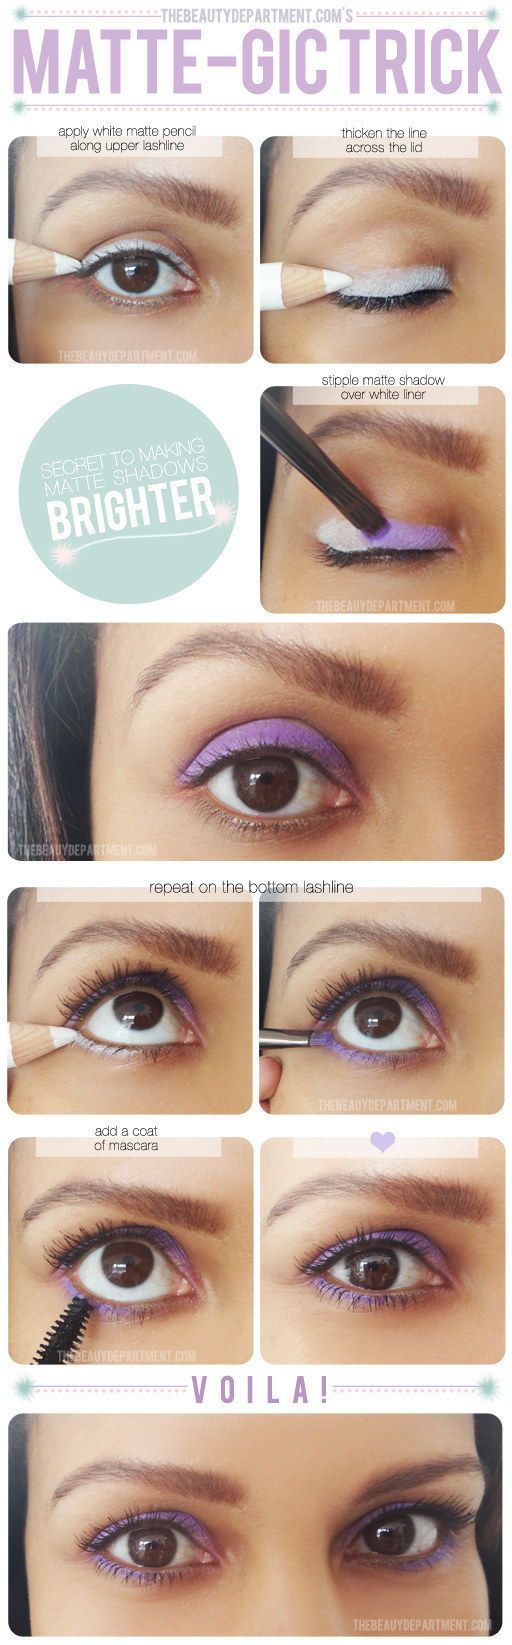 8 Eyeshadow Basics Everyone Should Know